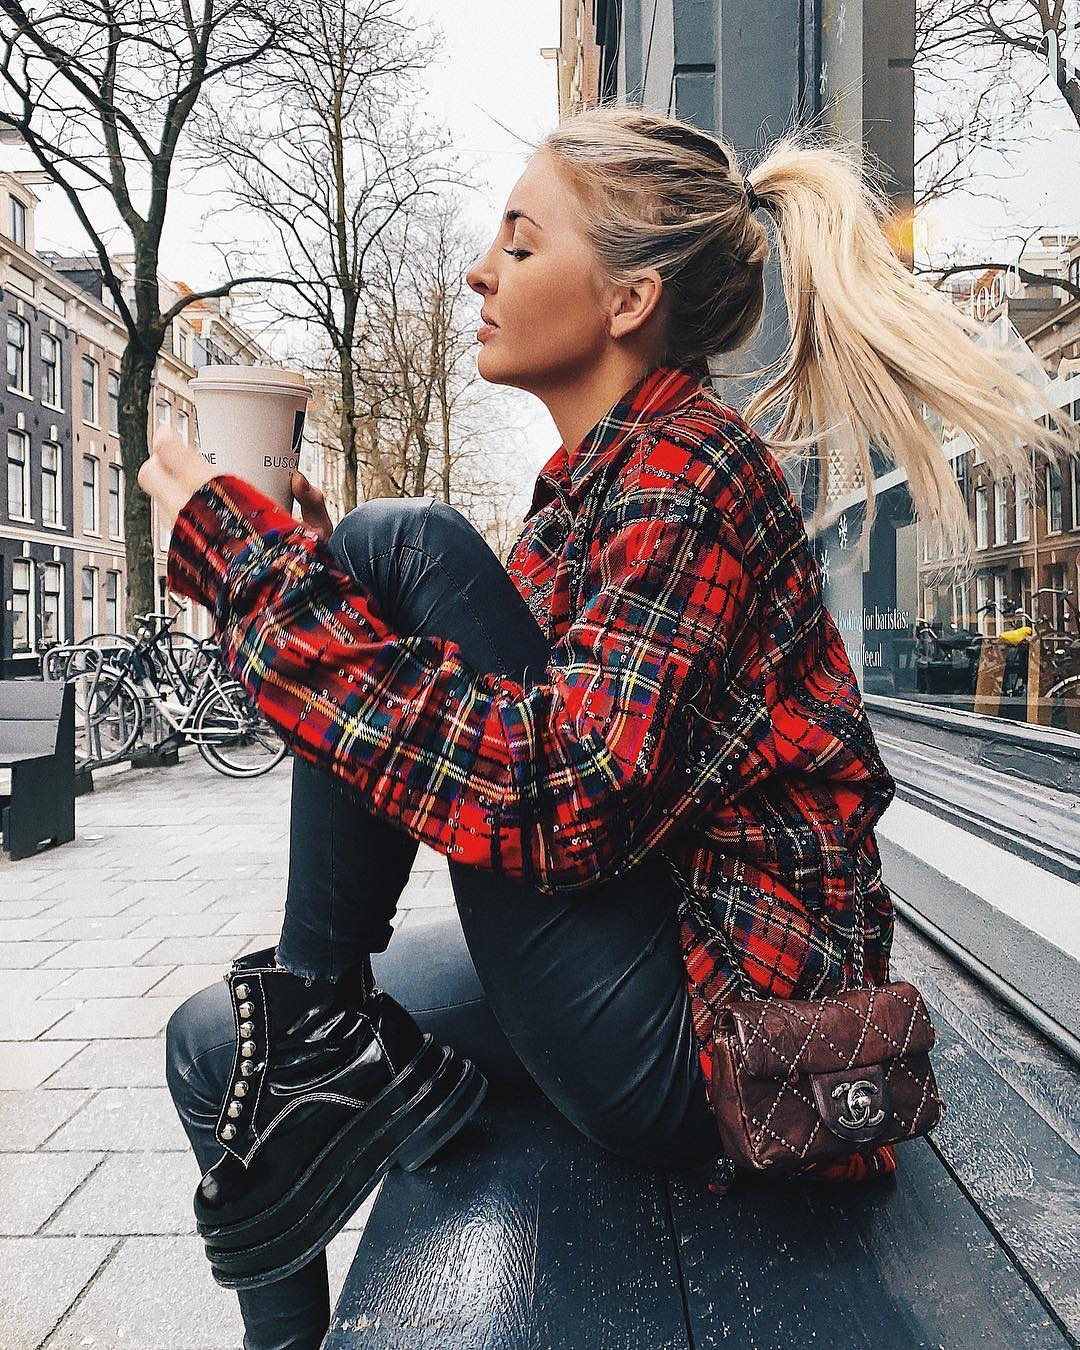 Plaid Red Shirt, Black Leather Pants And   Platform Leather Boots Outfit